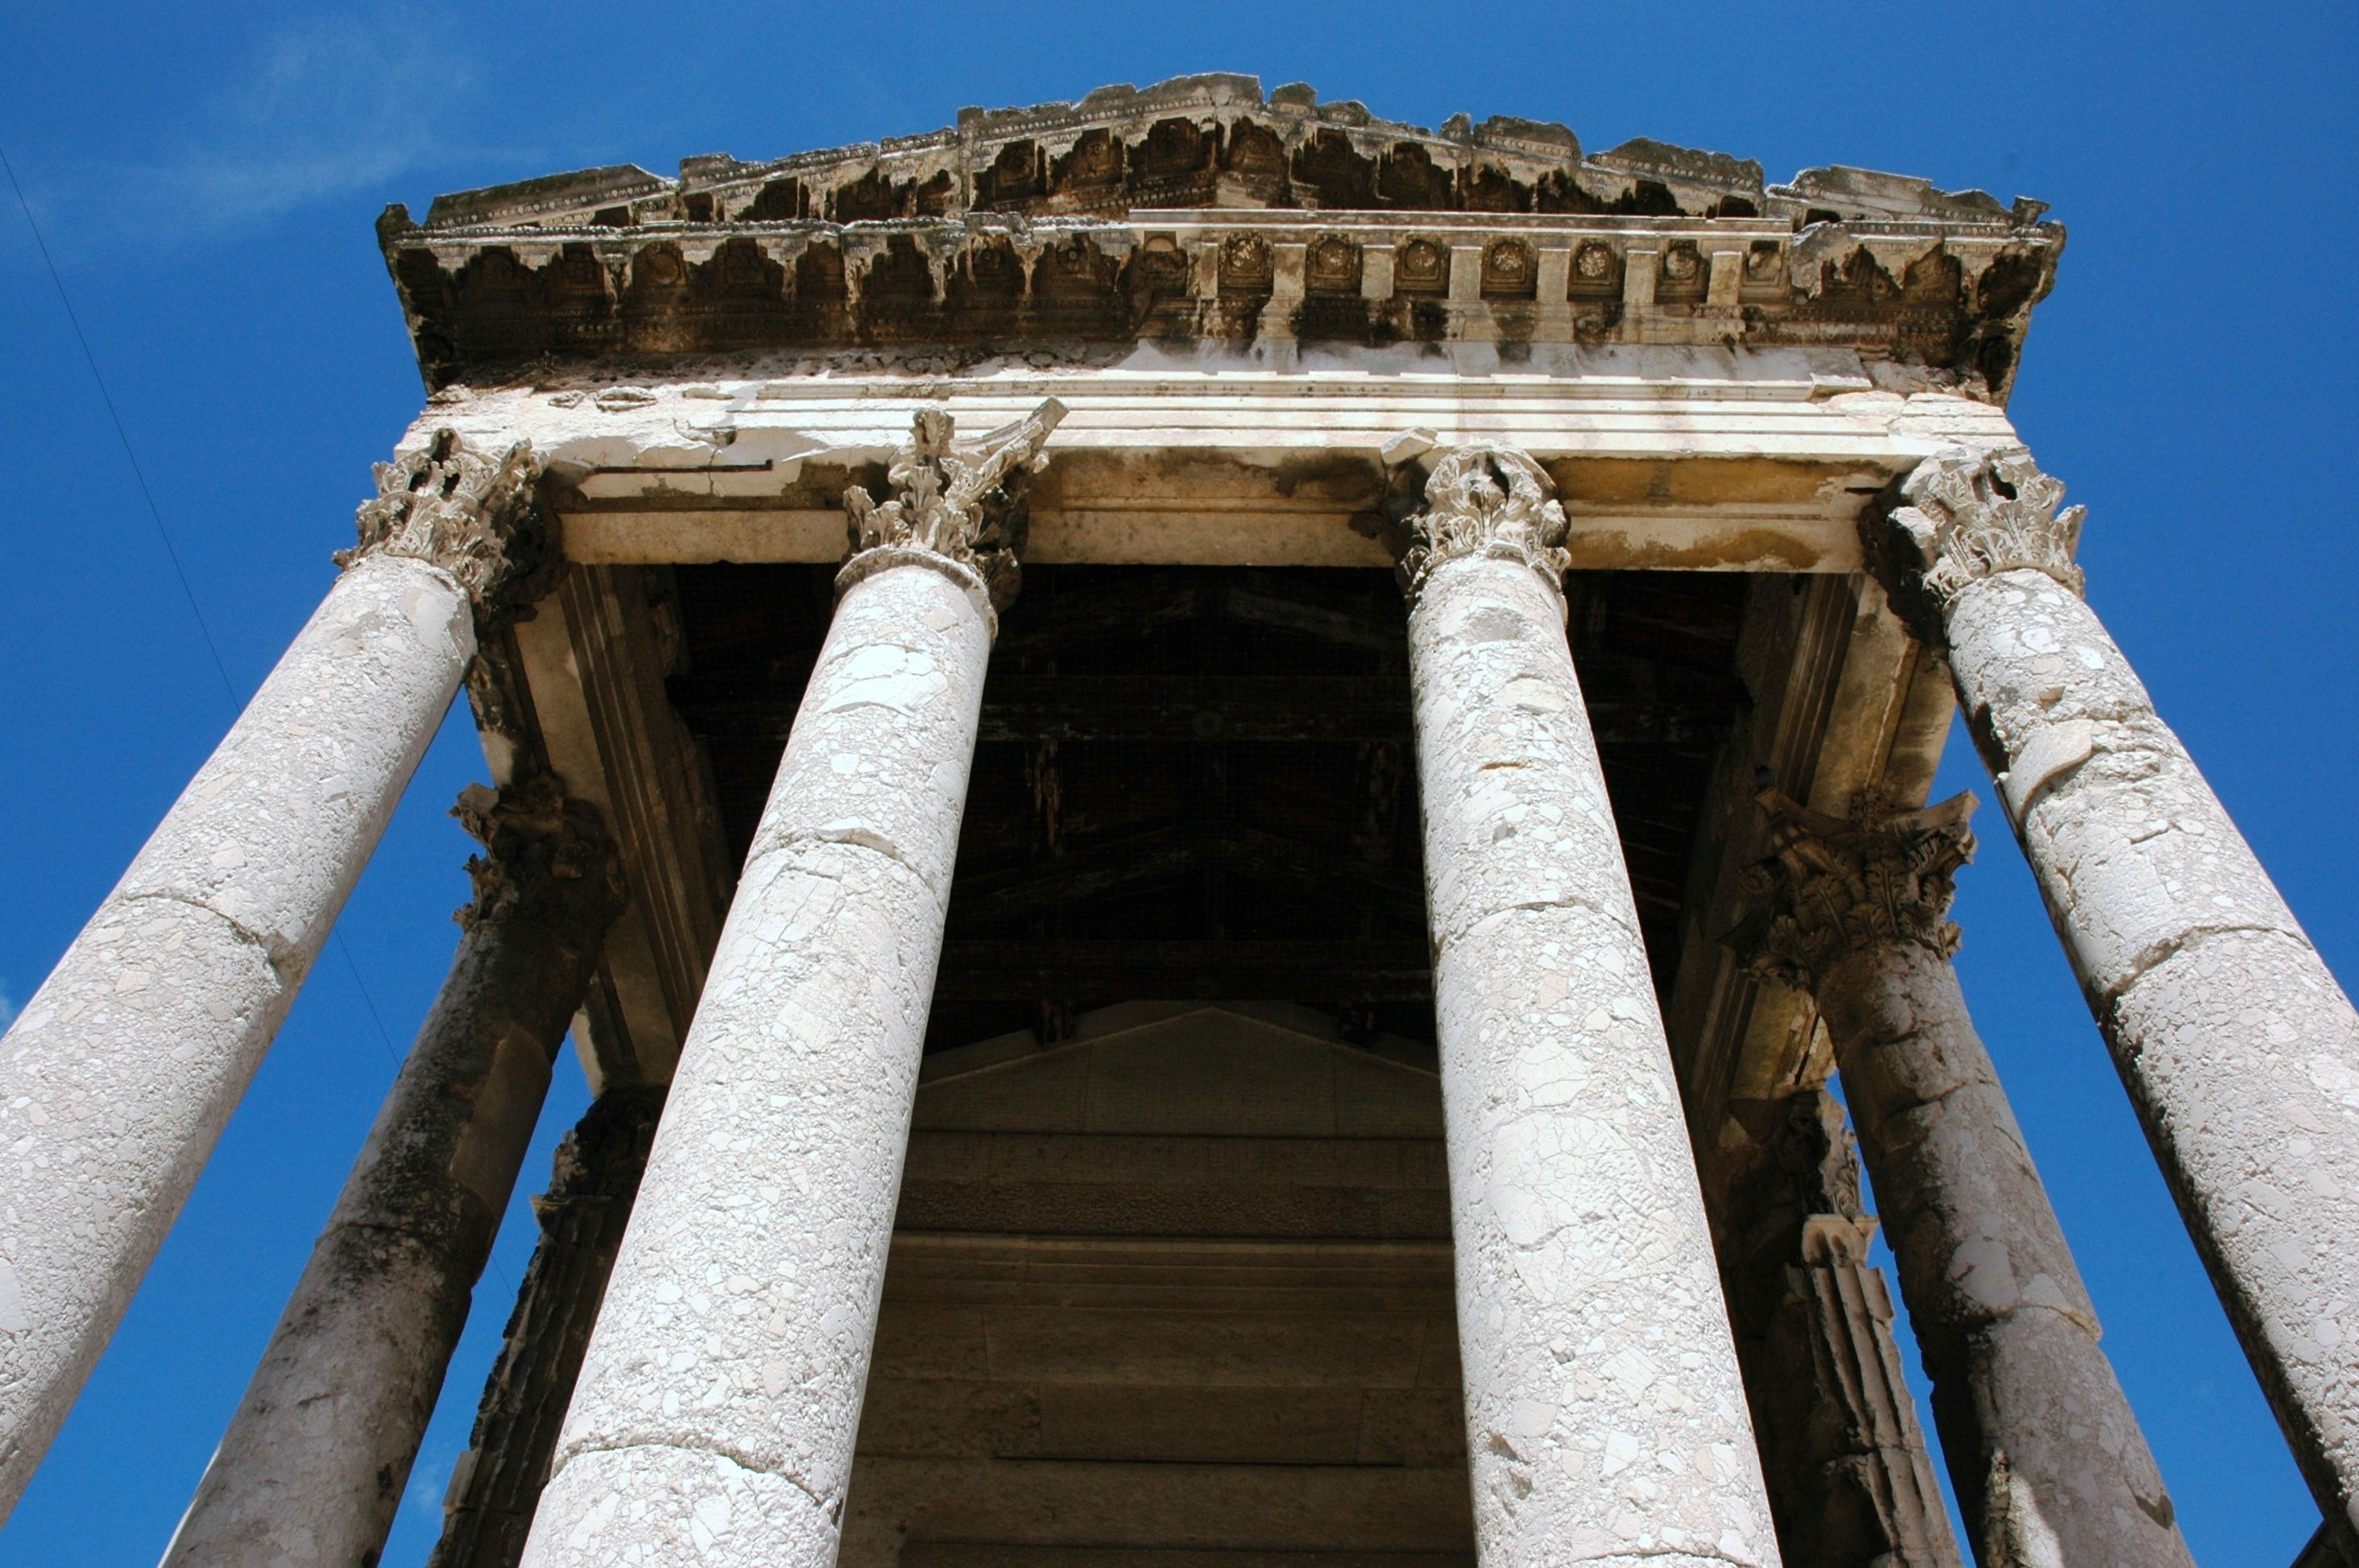 The Temple of Augustus in Pula